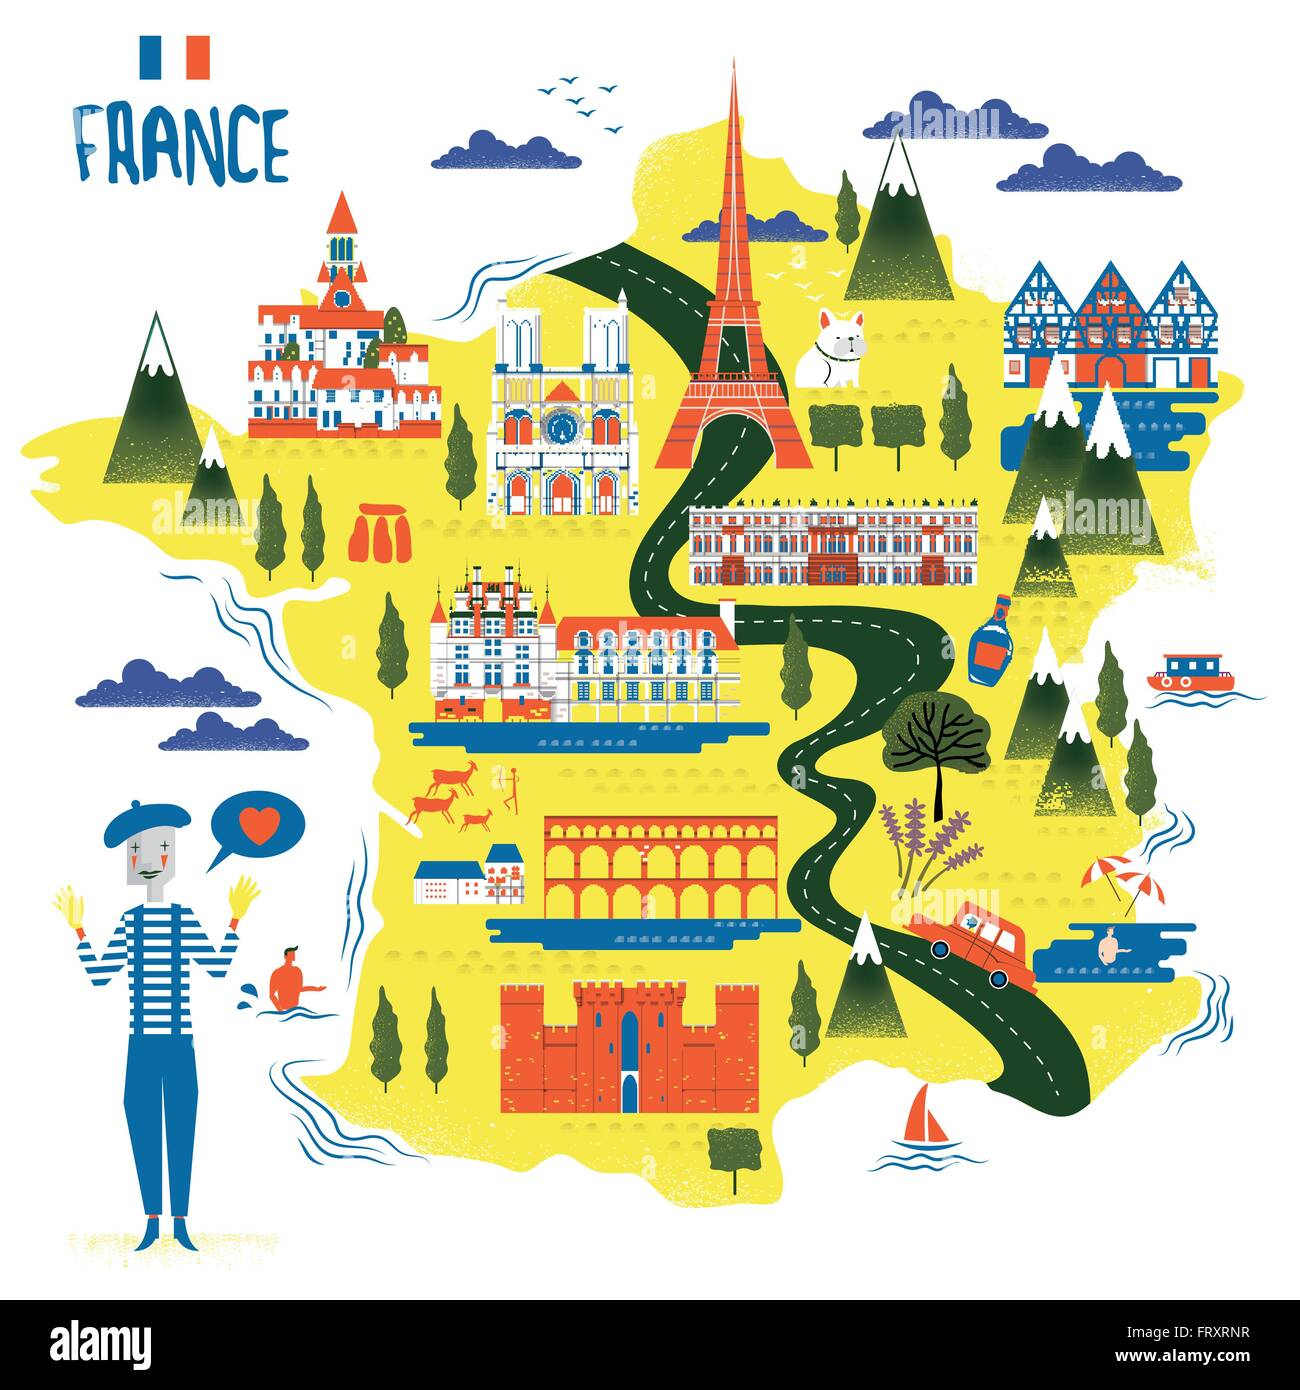 Travel Map Of France.Adorable France Travel Map With Attractions And Specialties Stock